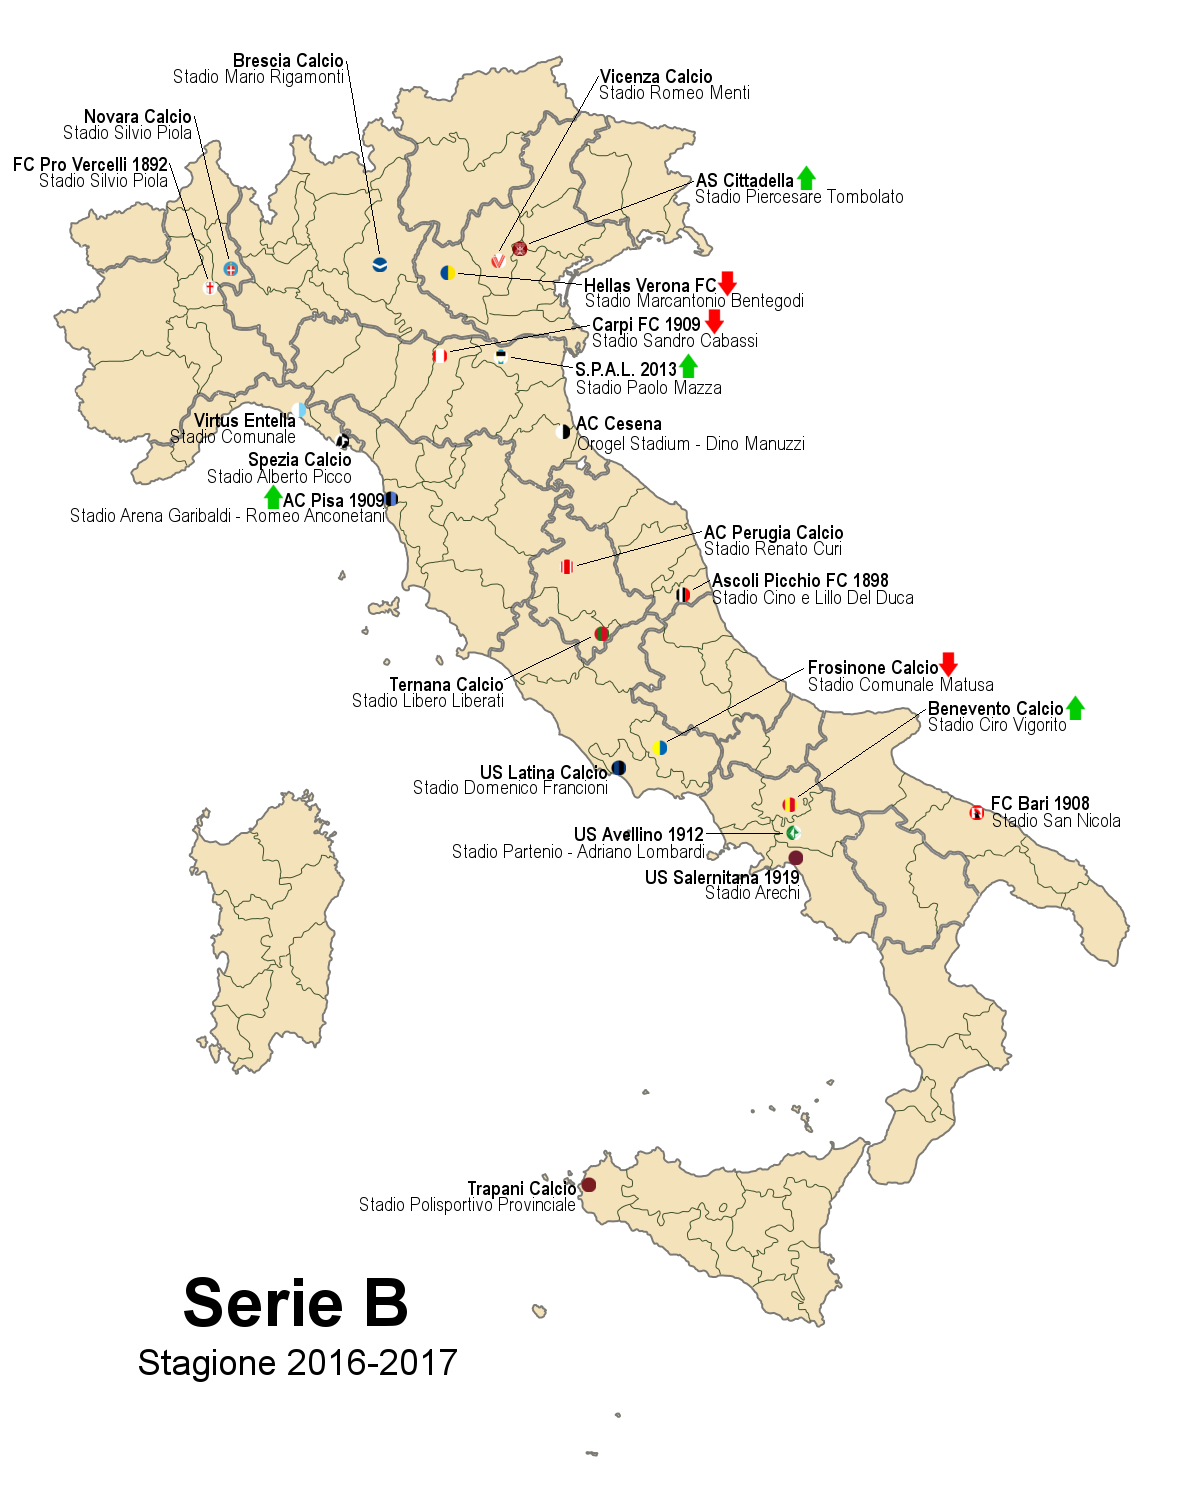 Benevento Calcio Calendario.Serie B 2016 2017 Wikipedia